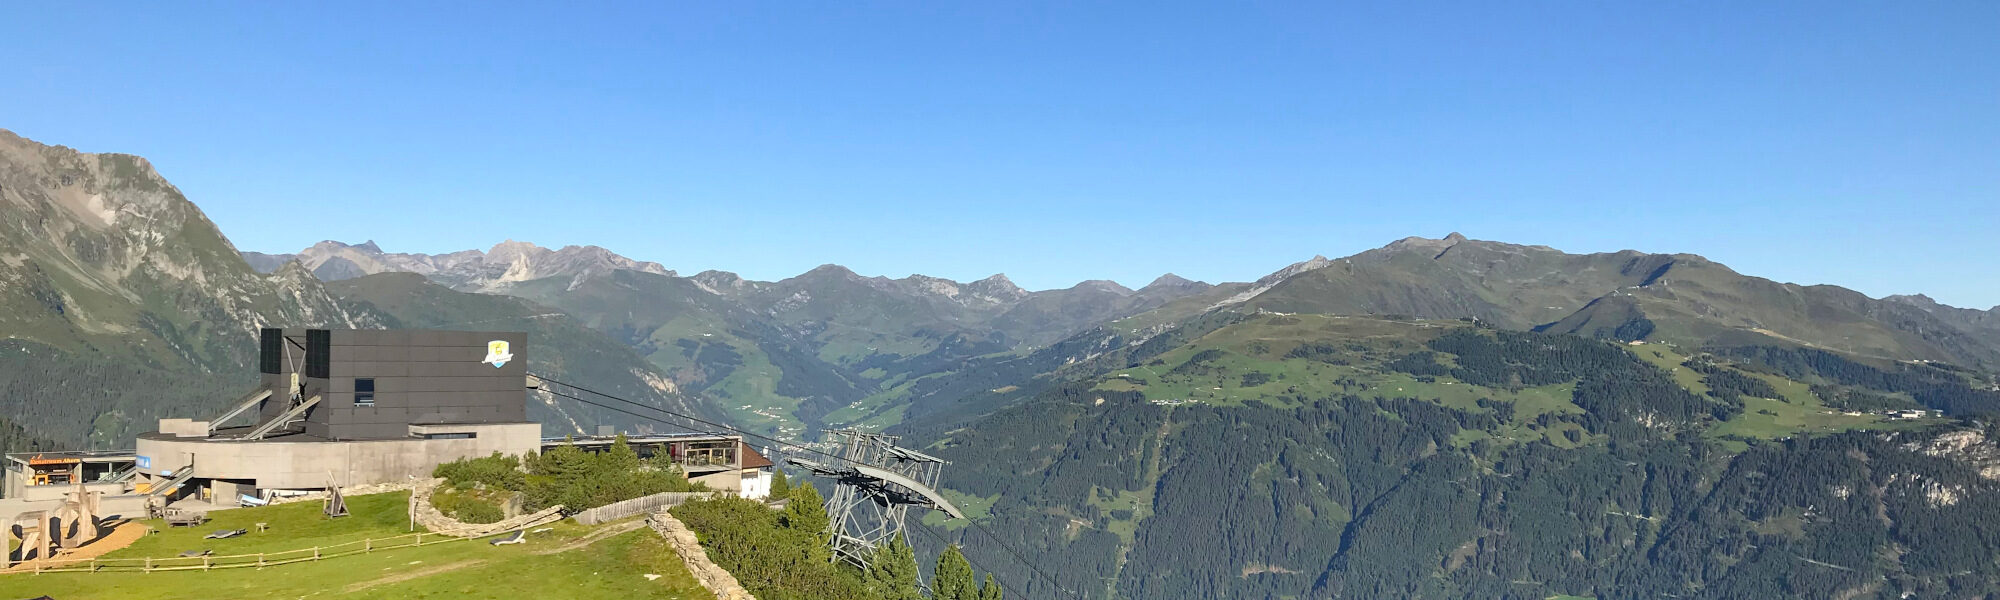 Read more about the article Das Zillertal in Tirol – voller Ruhe und Tradition